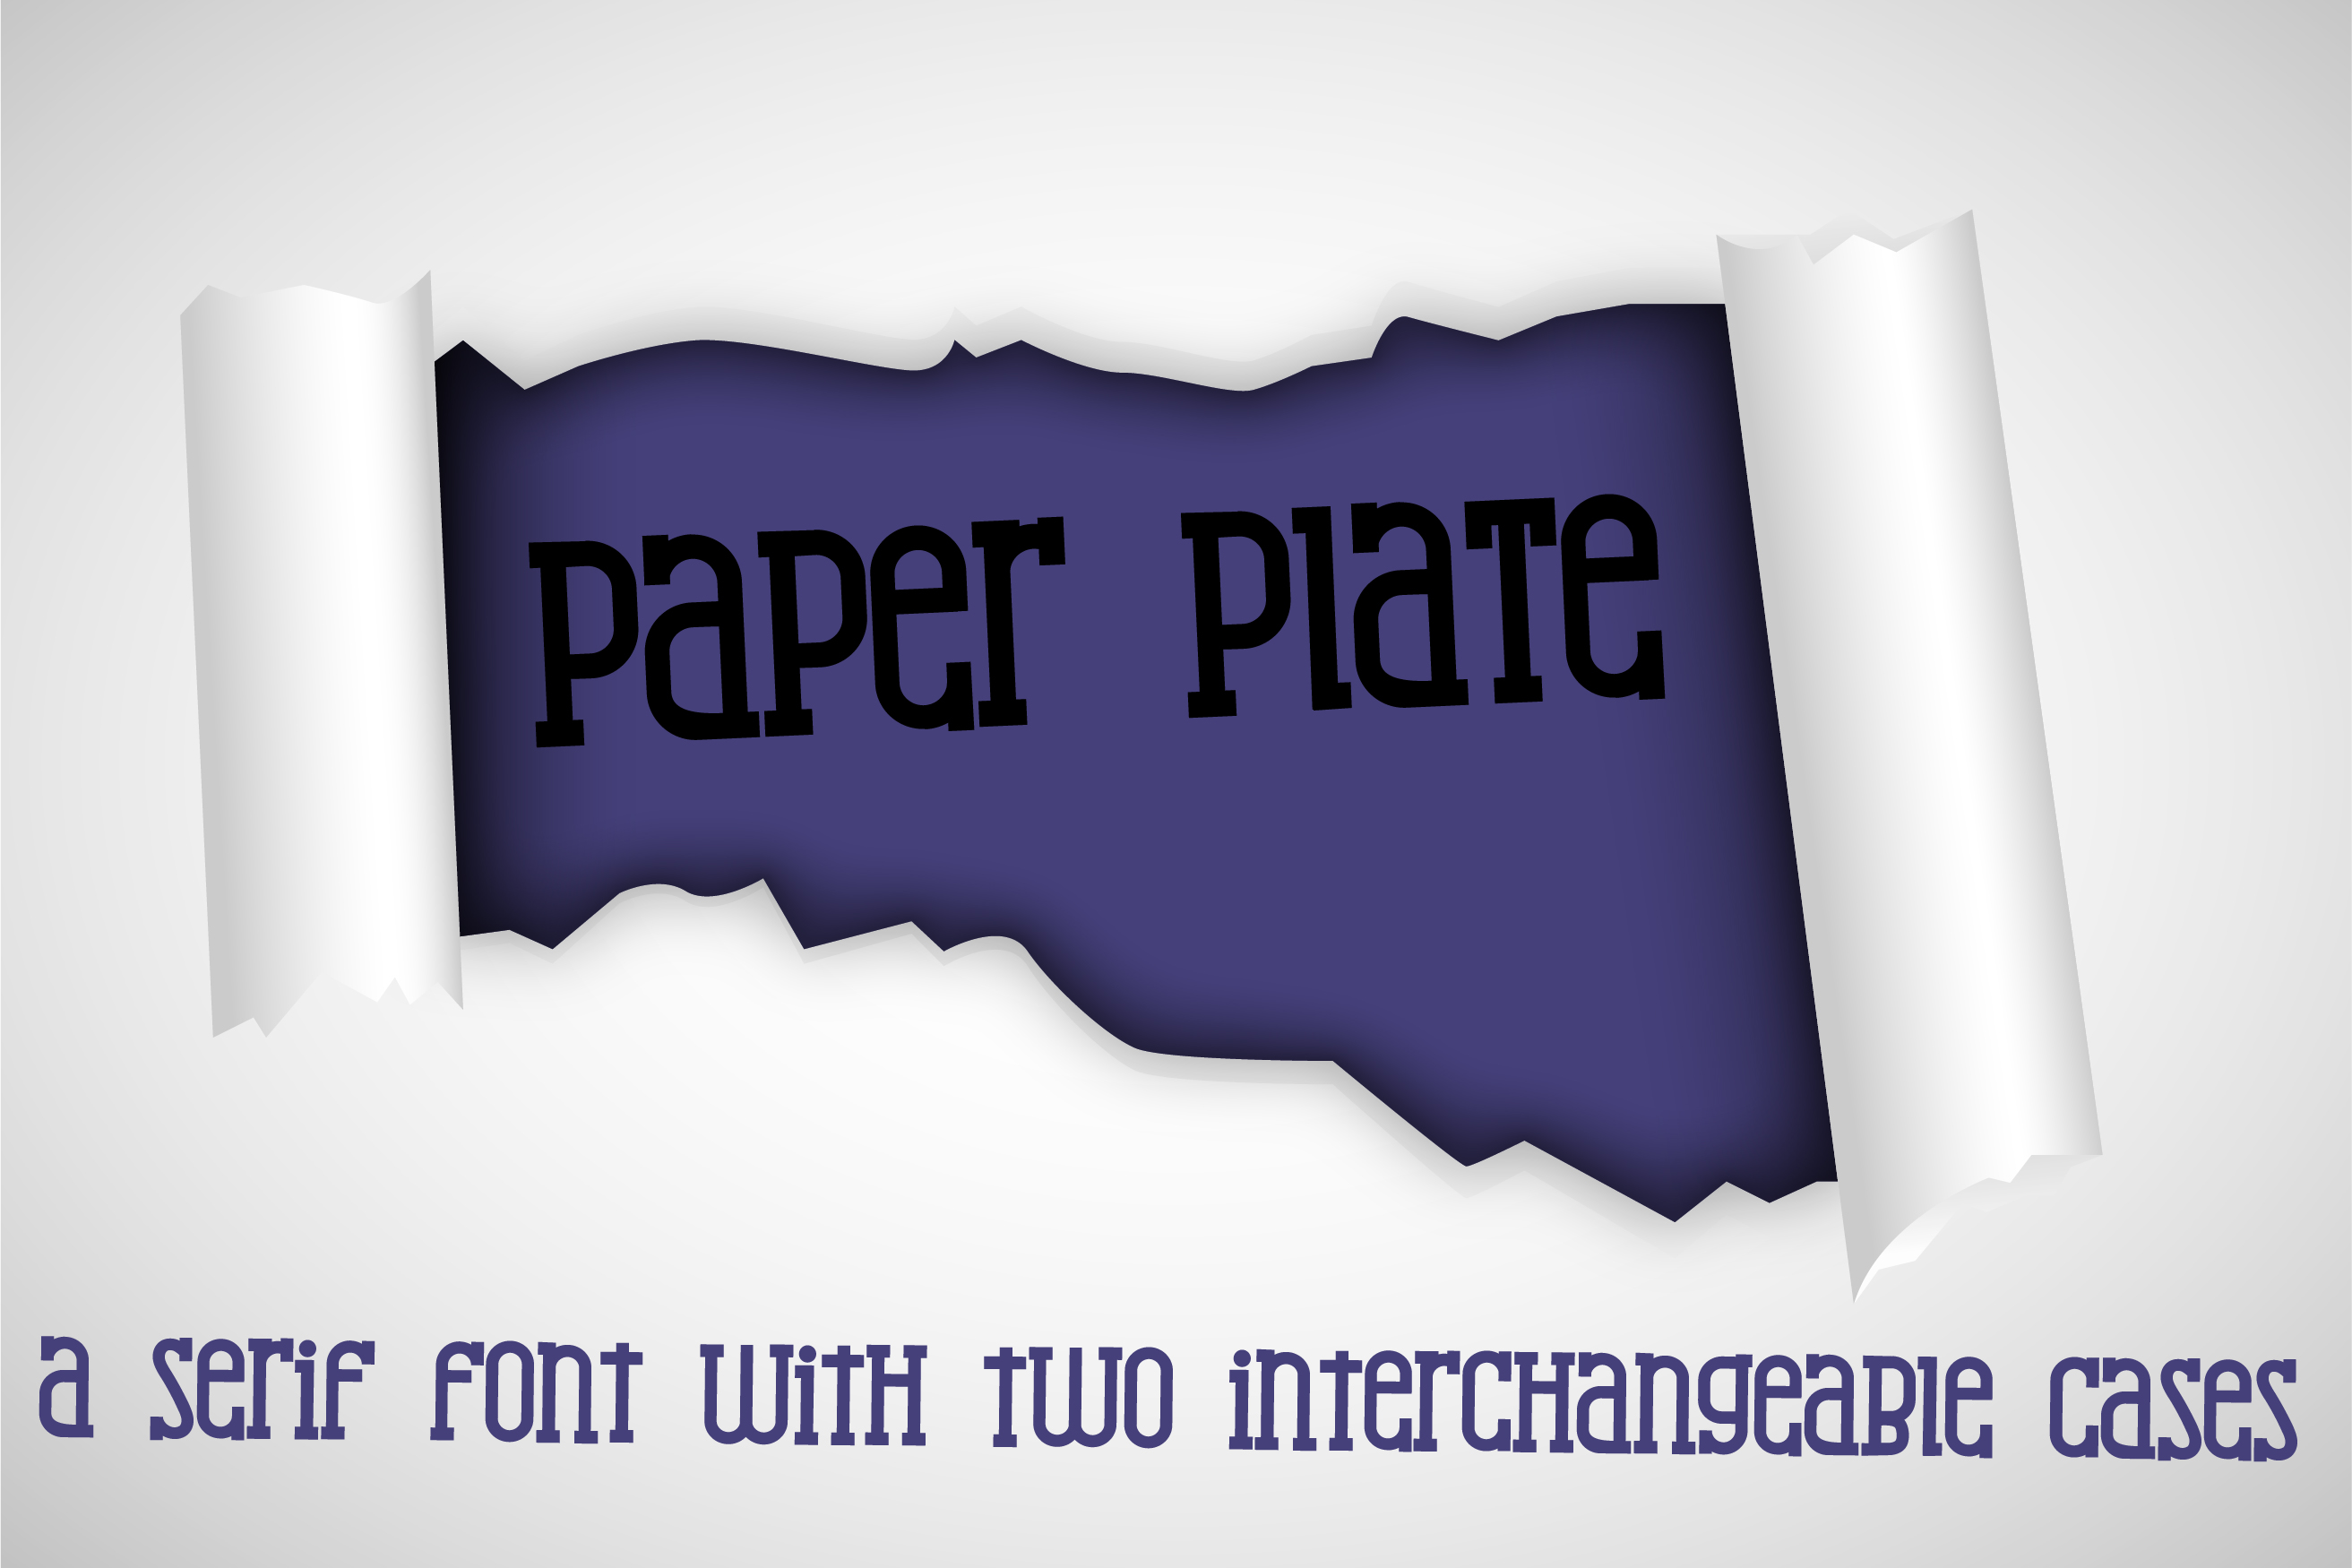 Download Free Paper Plate Font By Illustration Ink Creative Fabrica for Cricut Explore, Silhouette and other cutting machines.